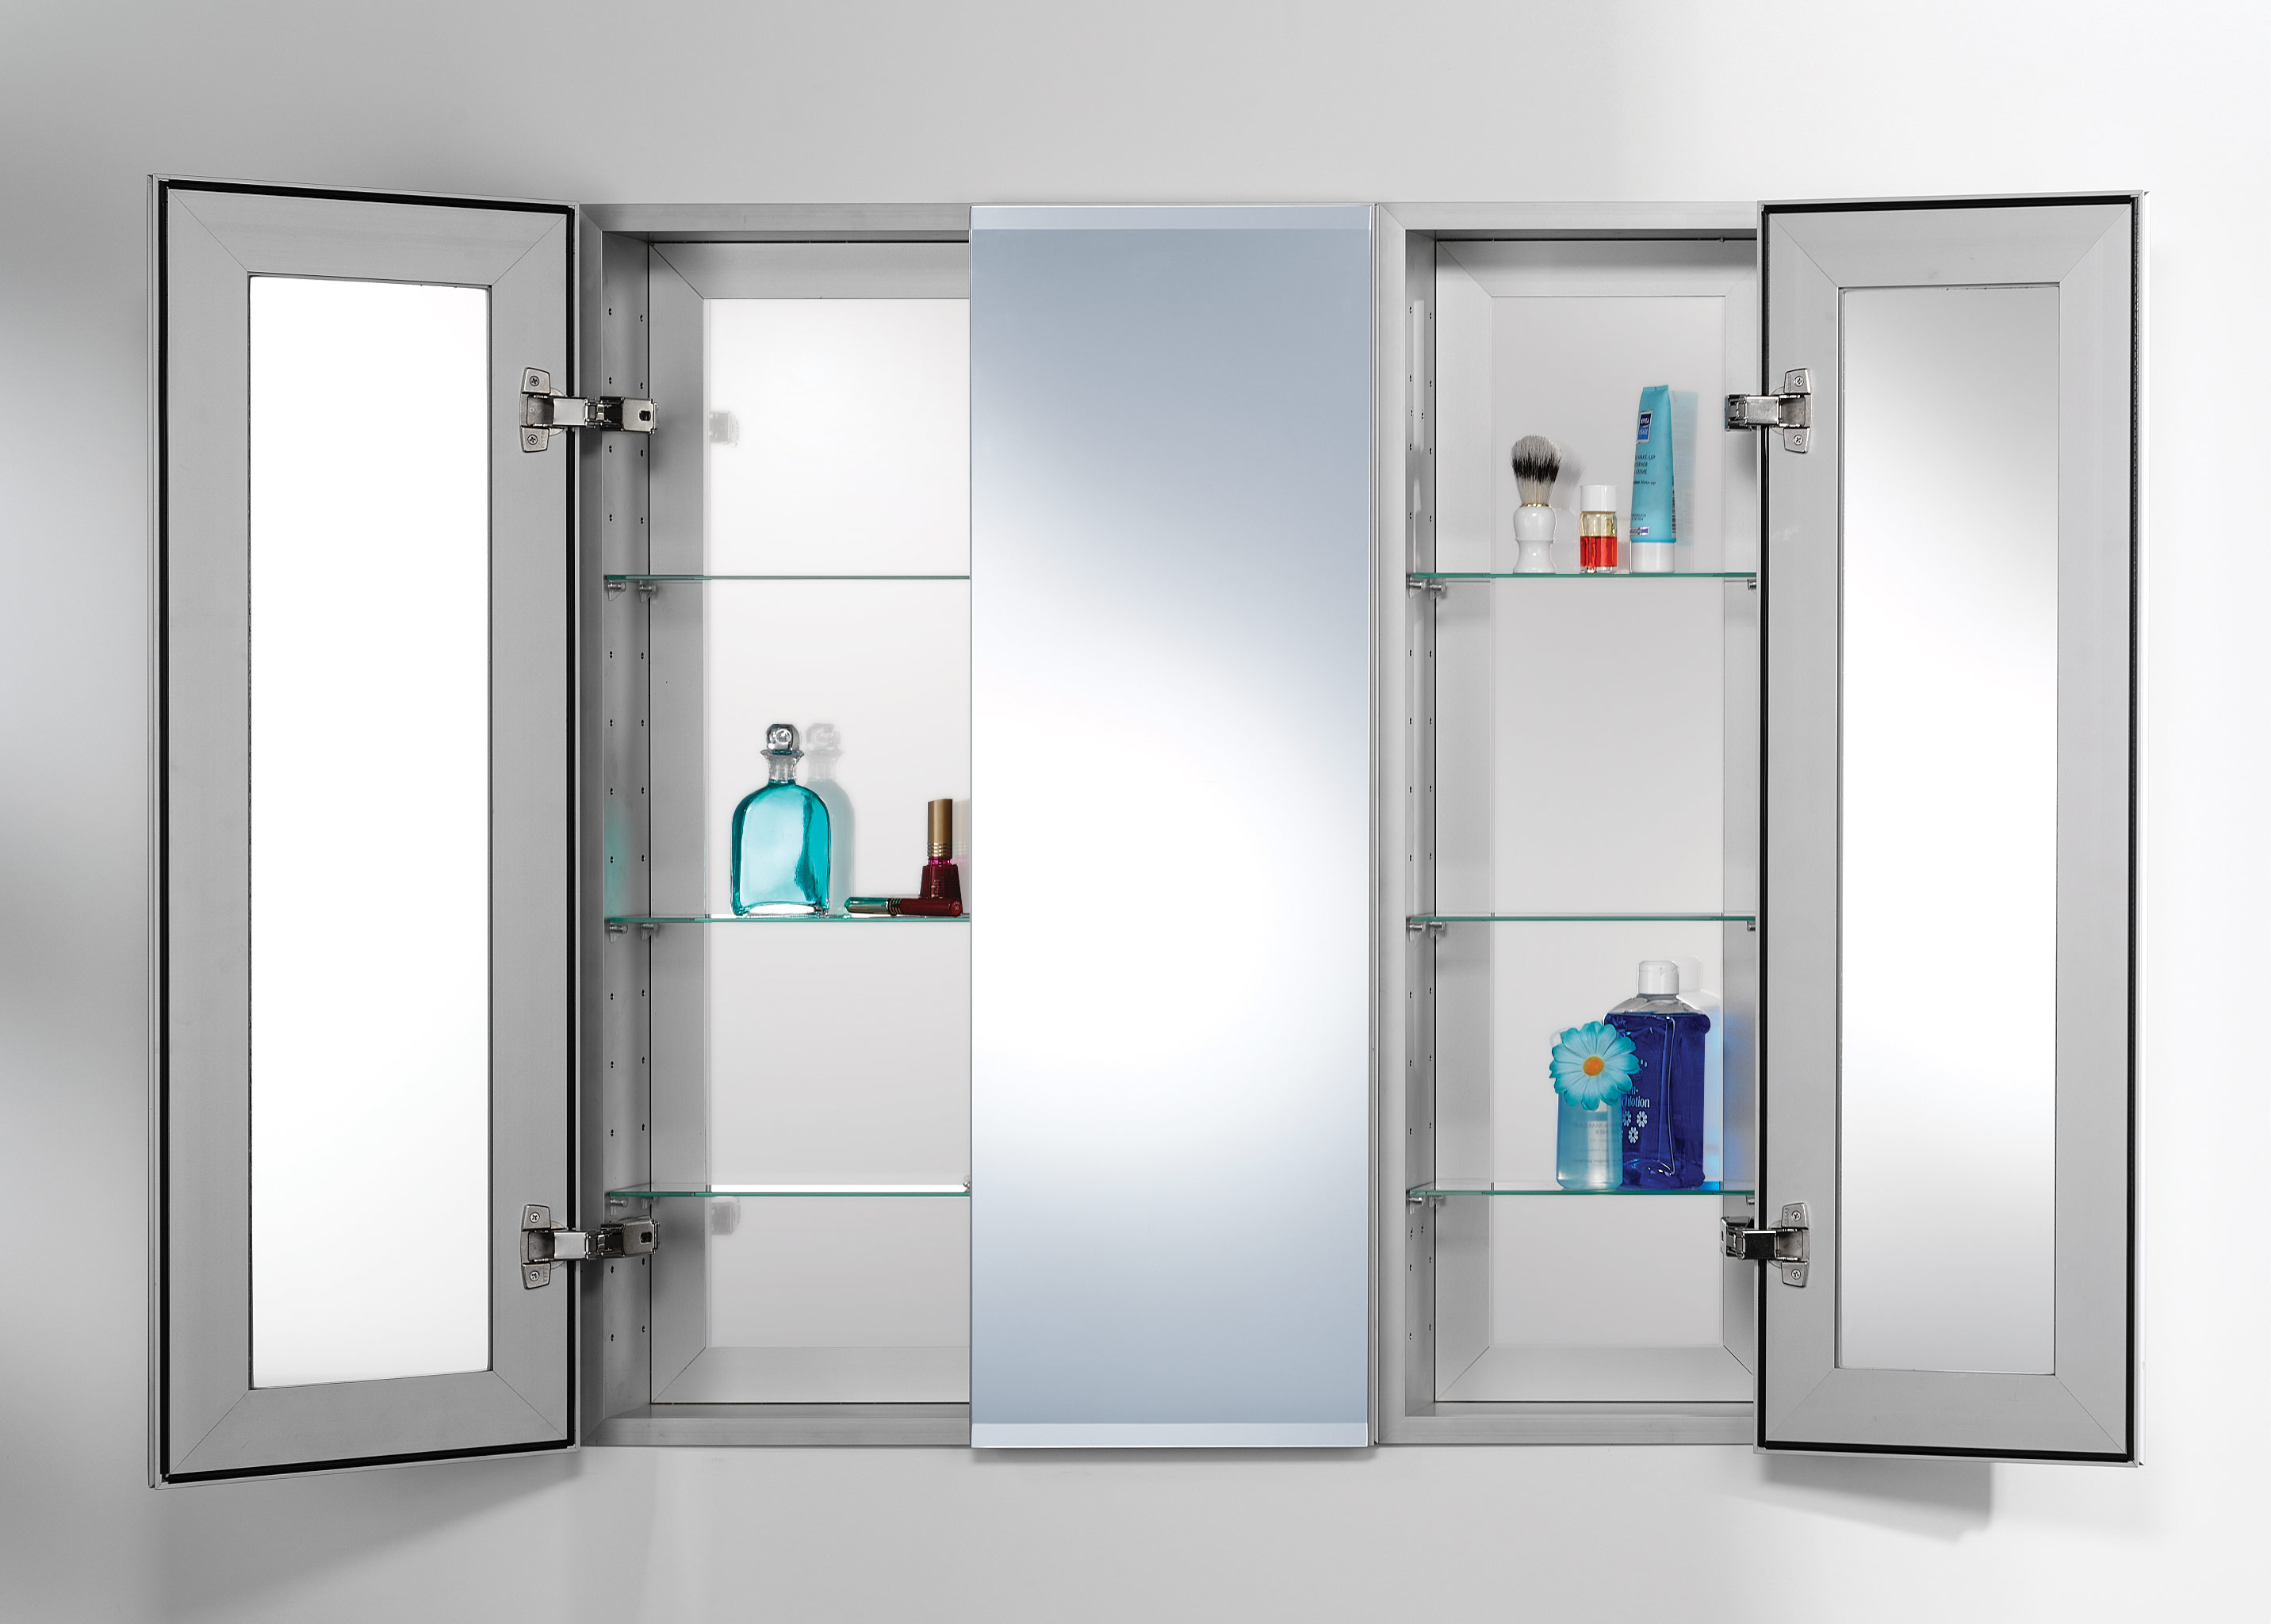 Charmant Bathroom Mirrored Medicine Cabinet